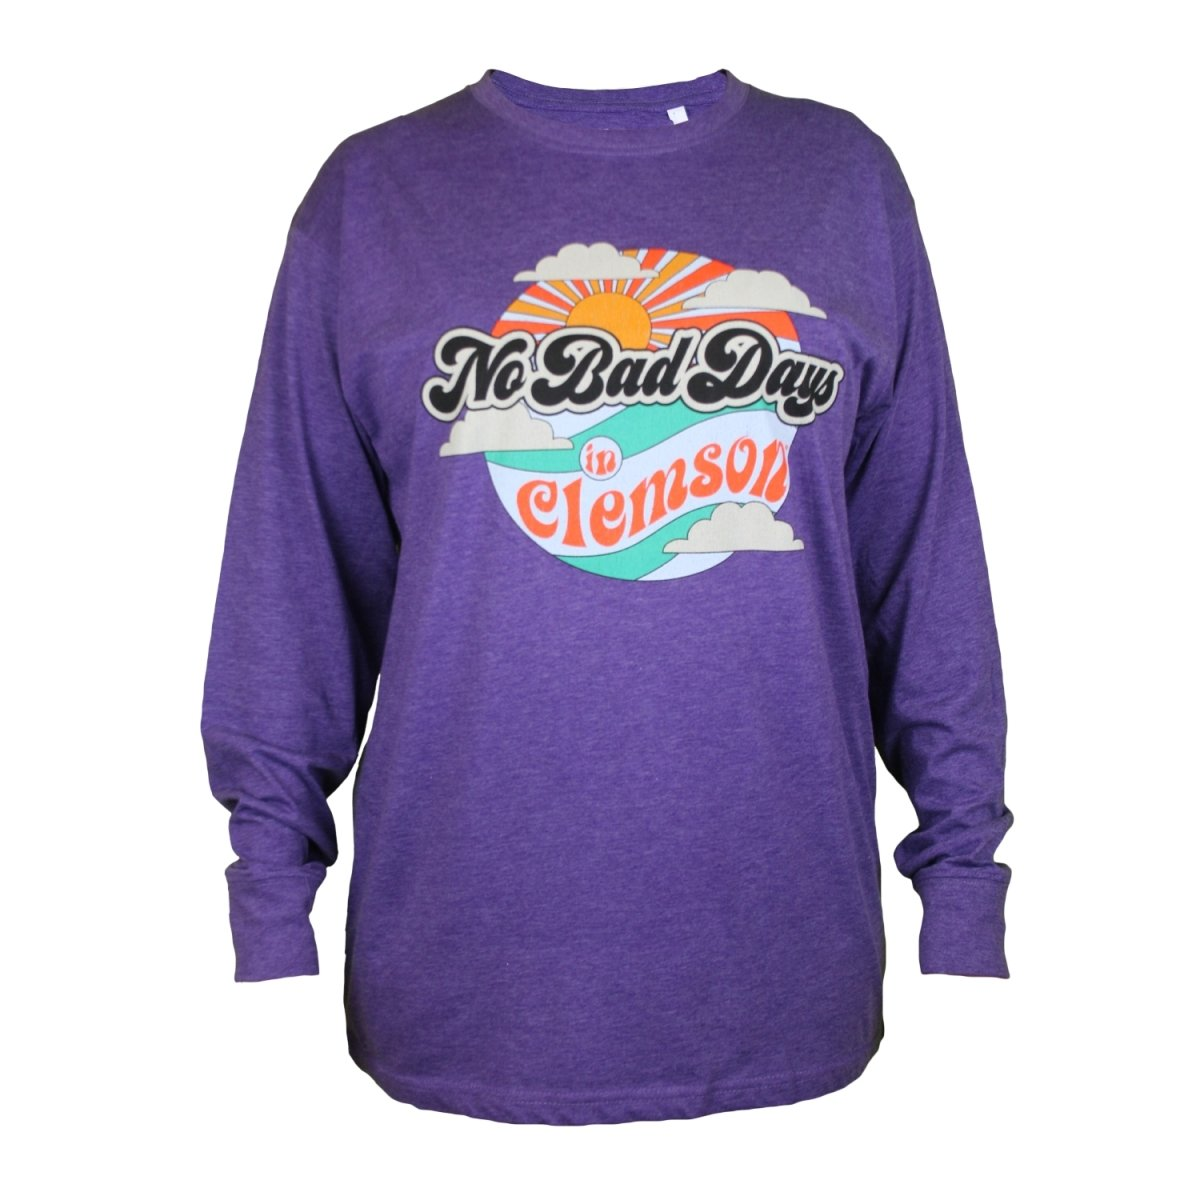 No Bad Days Long Sleeve Melange Tee - Mr. Knickerbocker